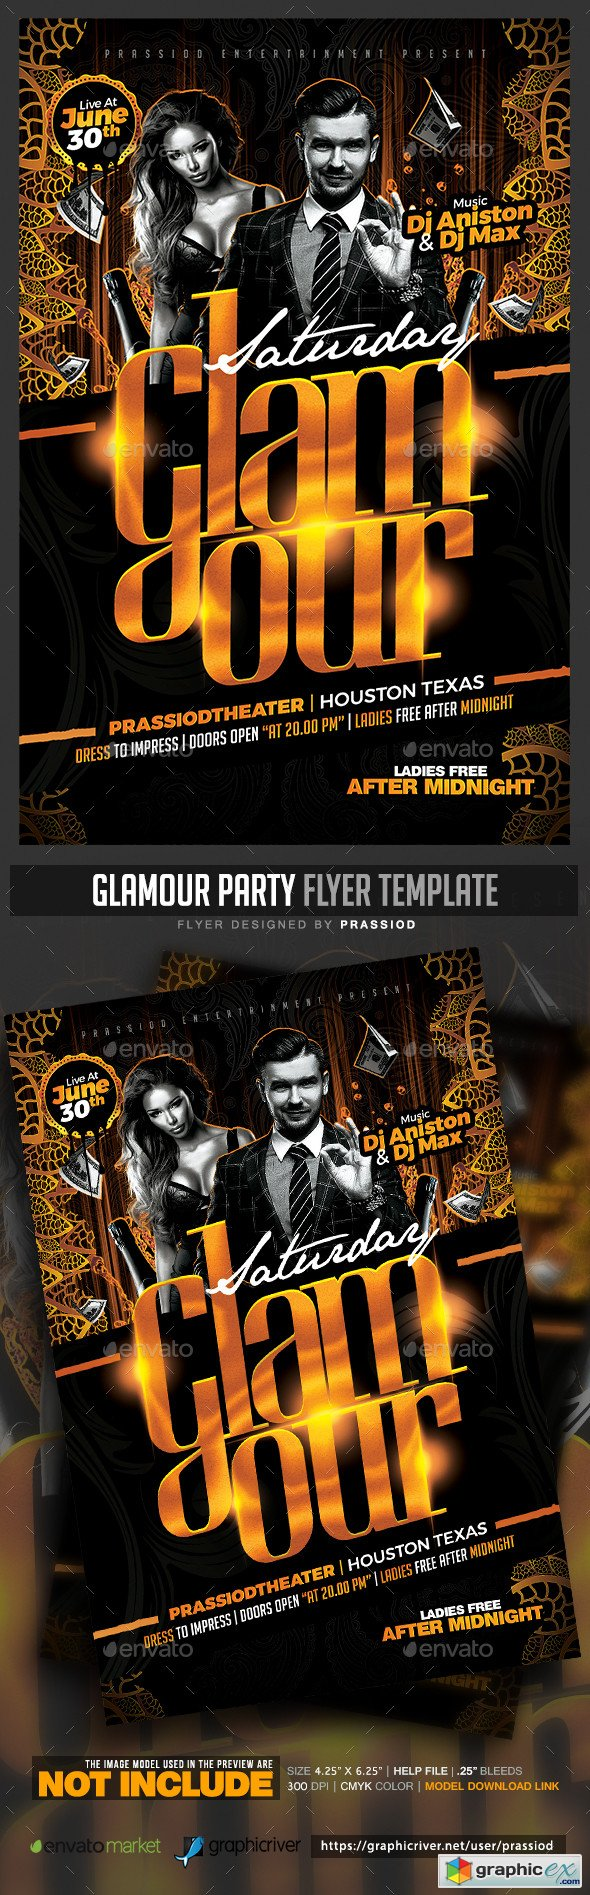 Glamour Party Flyer Template 20371798